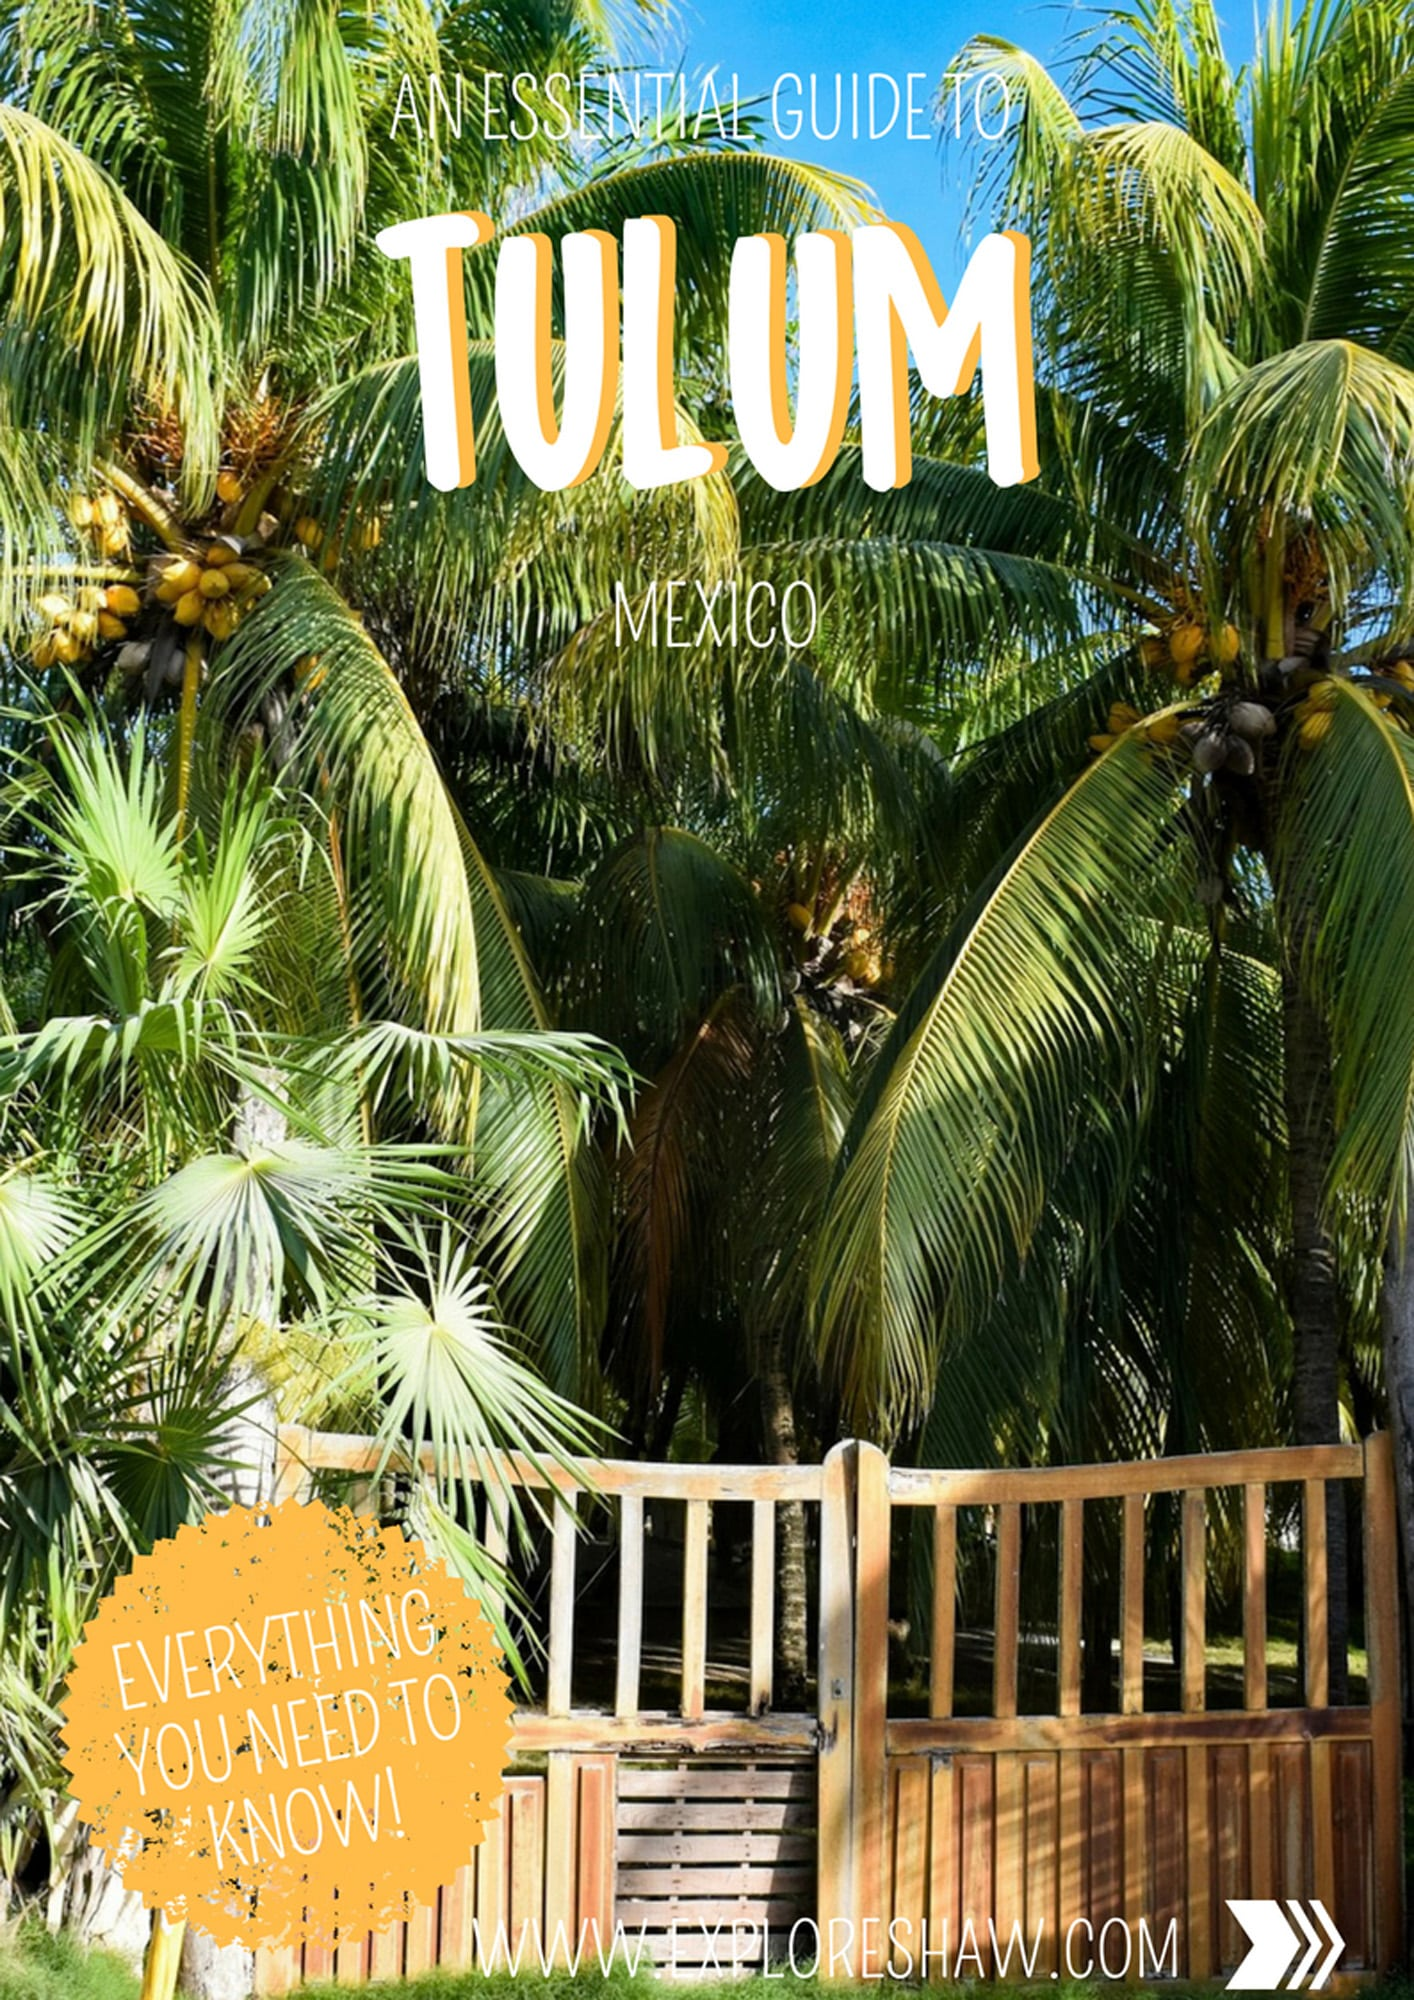 AN ESSENTIAL GUIDE TO TULUM